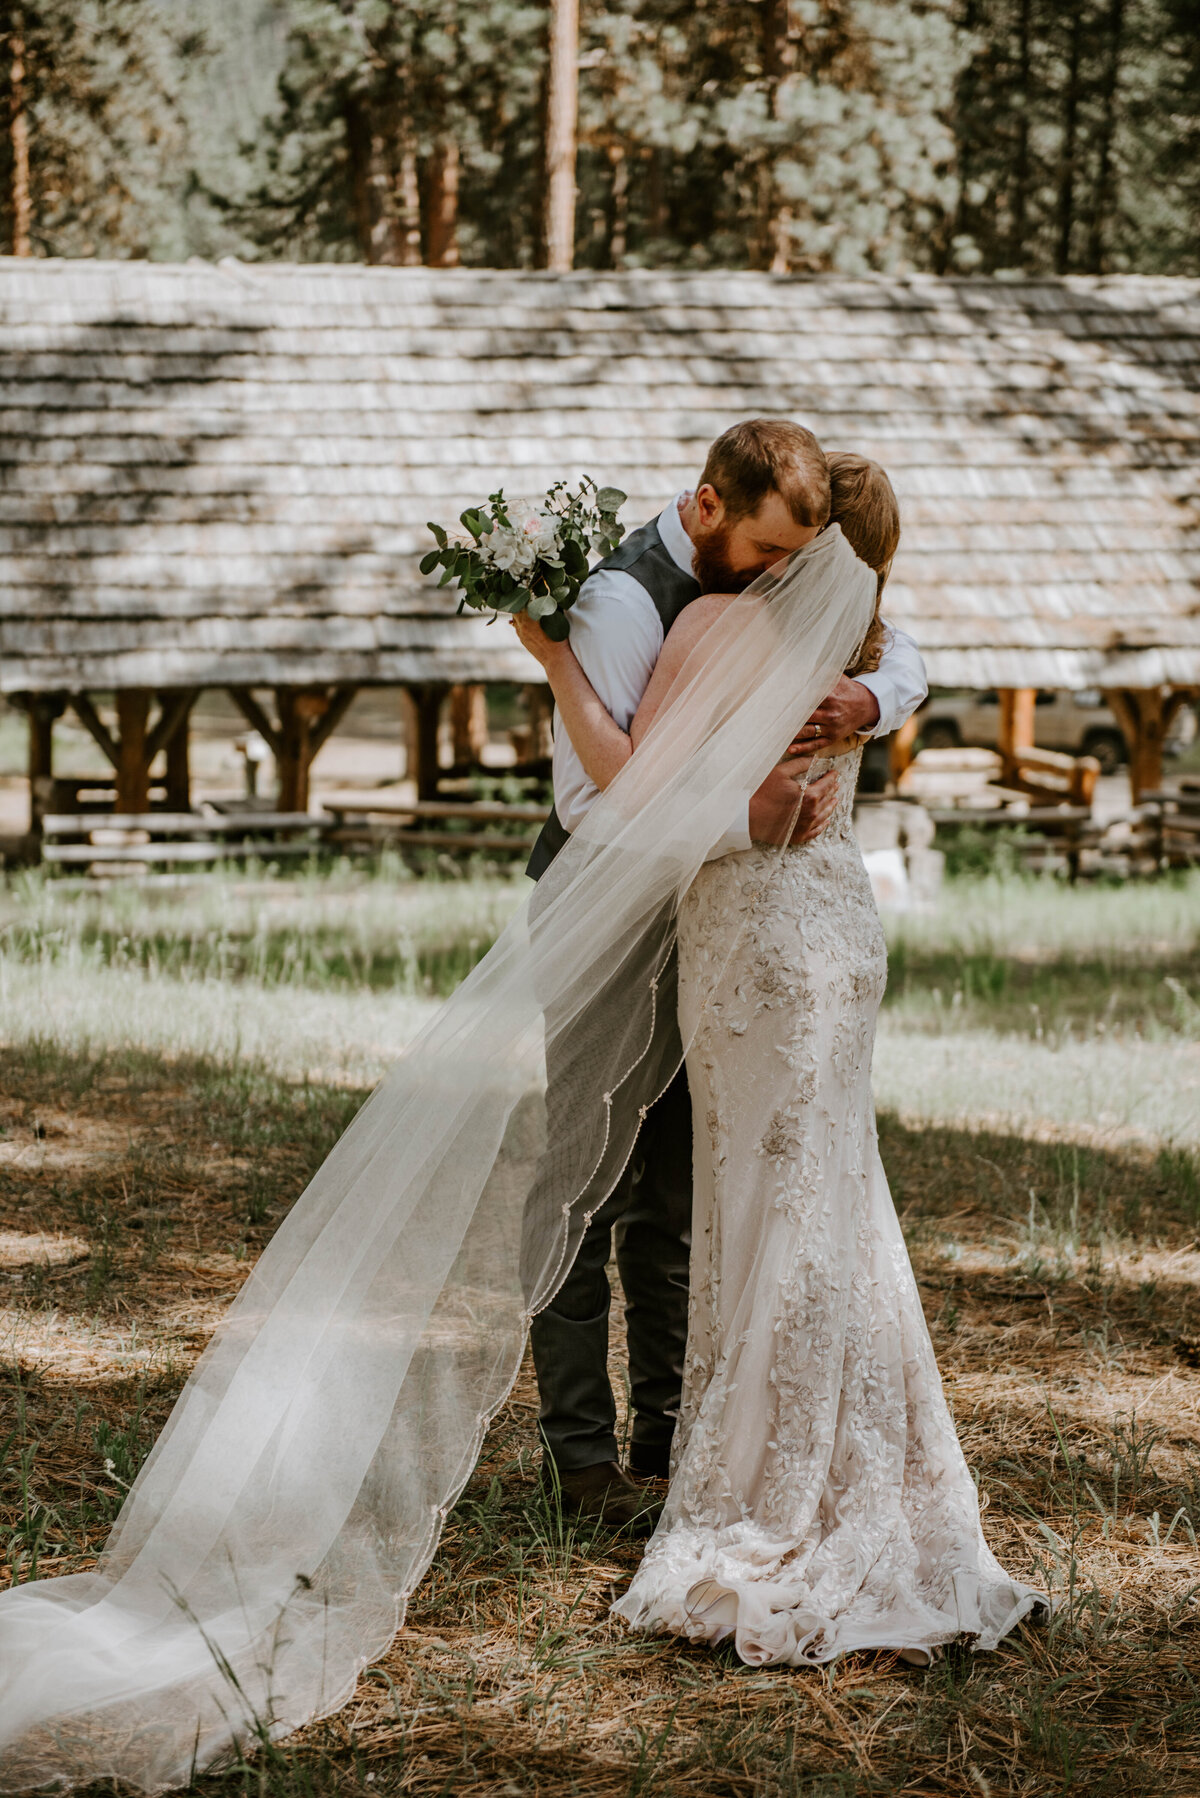 ochoco-forest-central-oregon-elopement-pnw-woods-wedding-covid-bend-photographer-inspiration2451